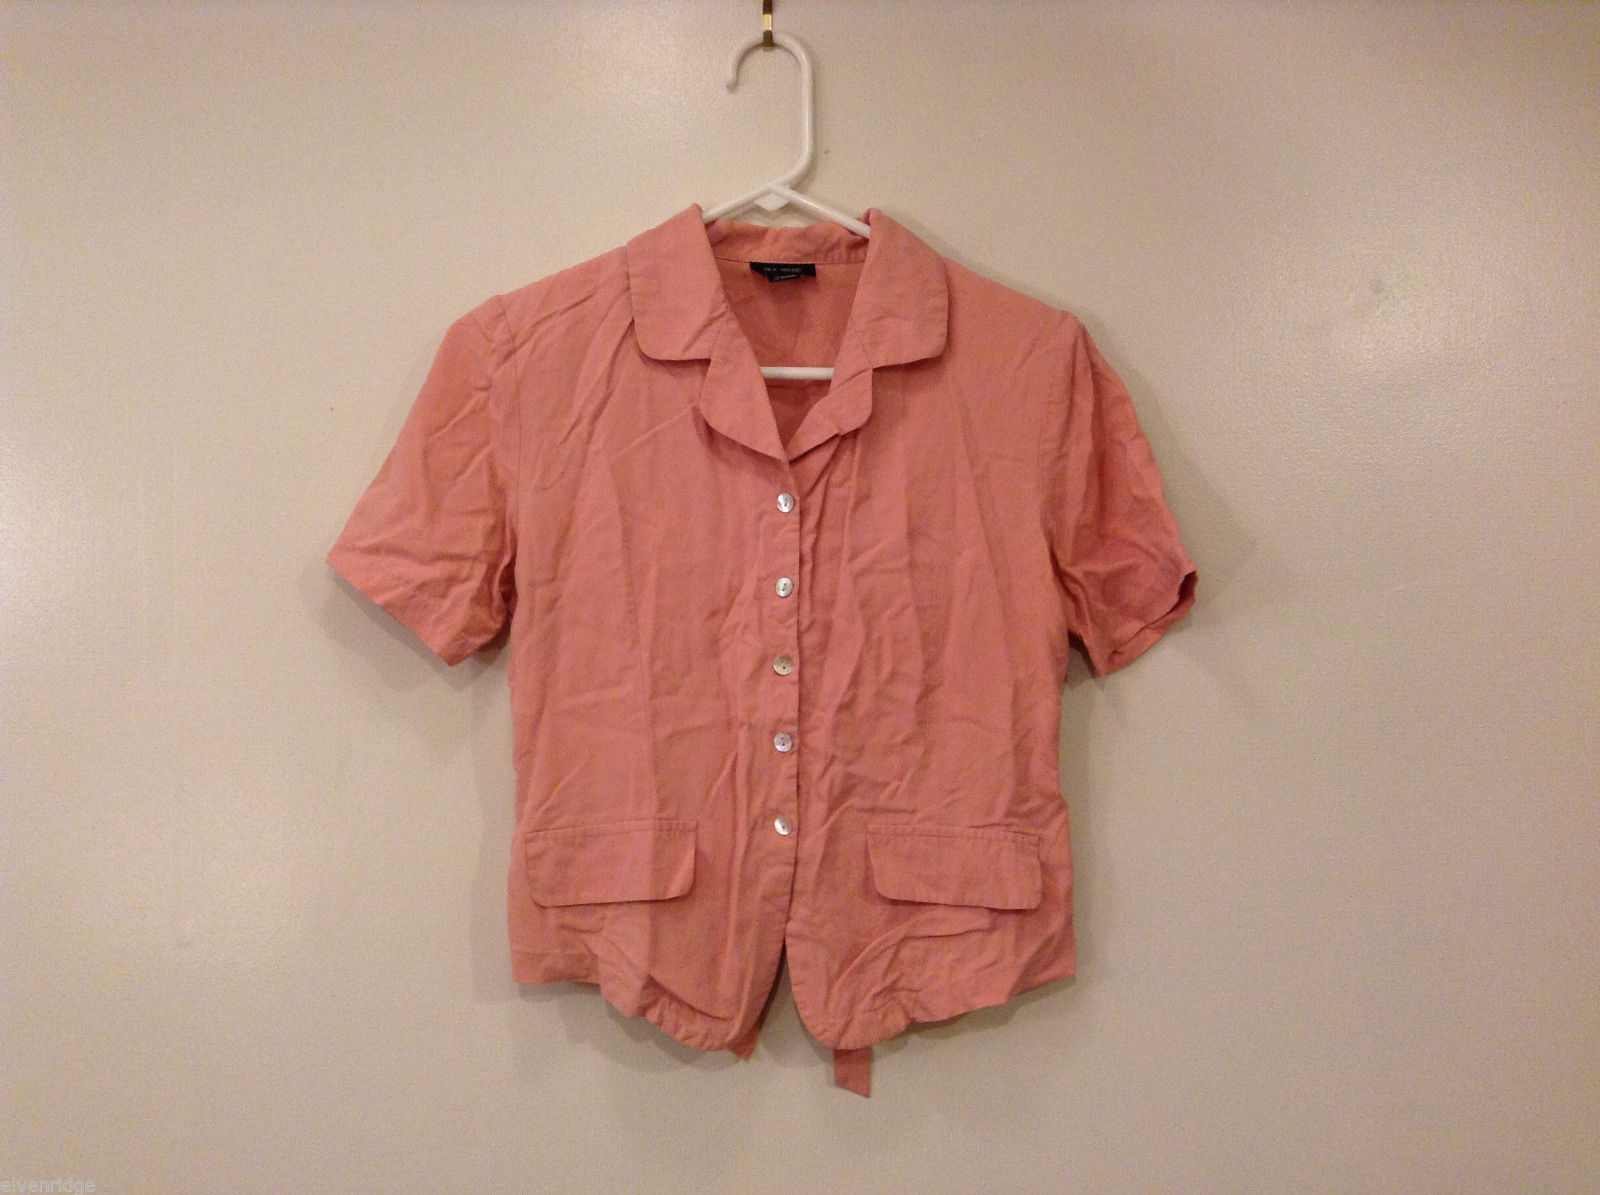 Silk House Women's Size Petite S Shirt Dusty Rose Pink Button-Down Short Sleeves